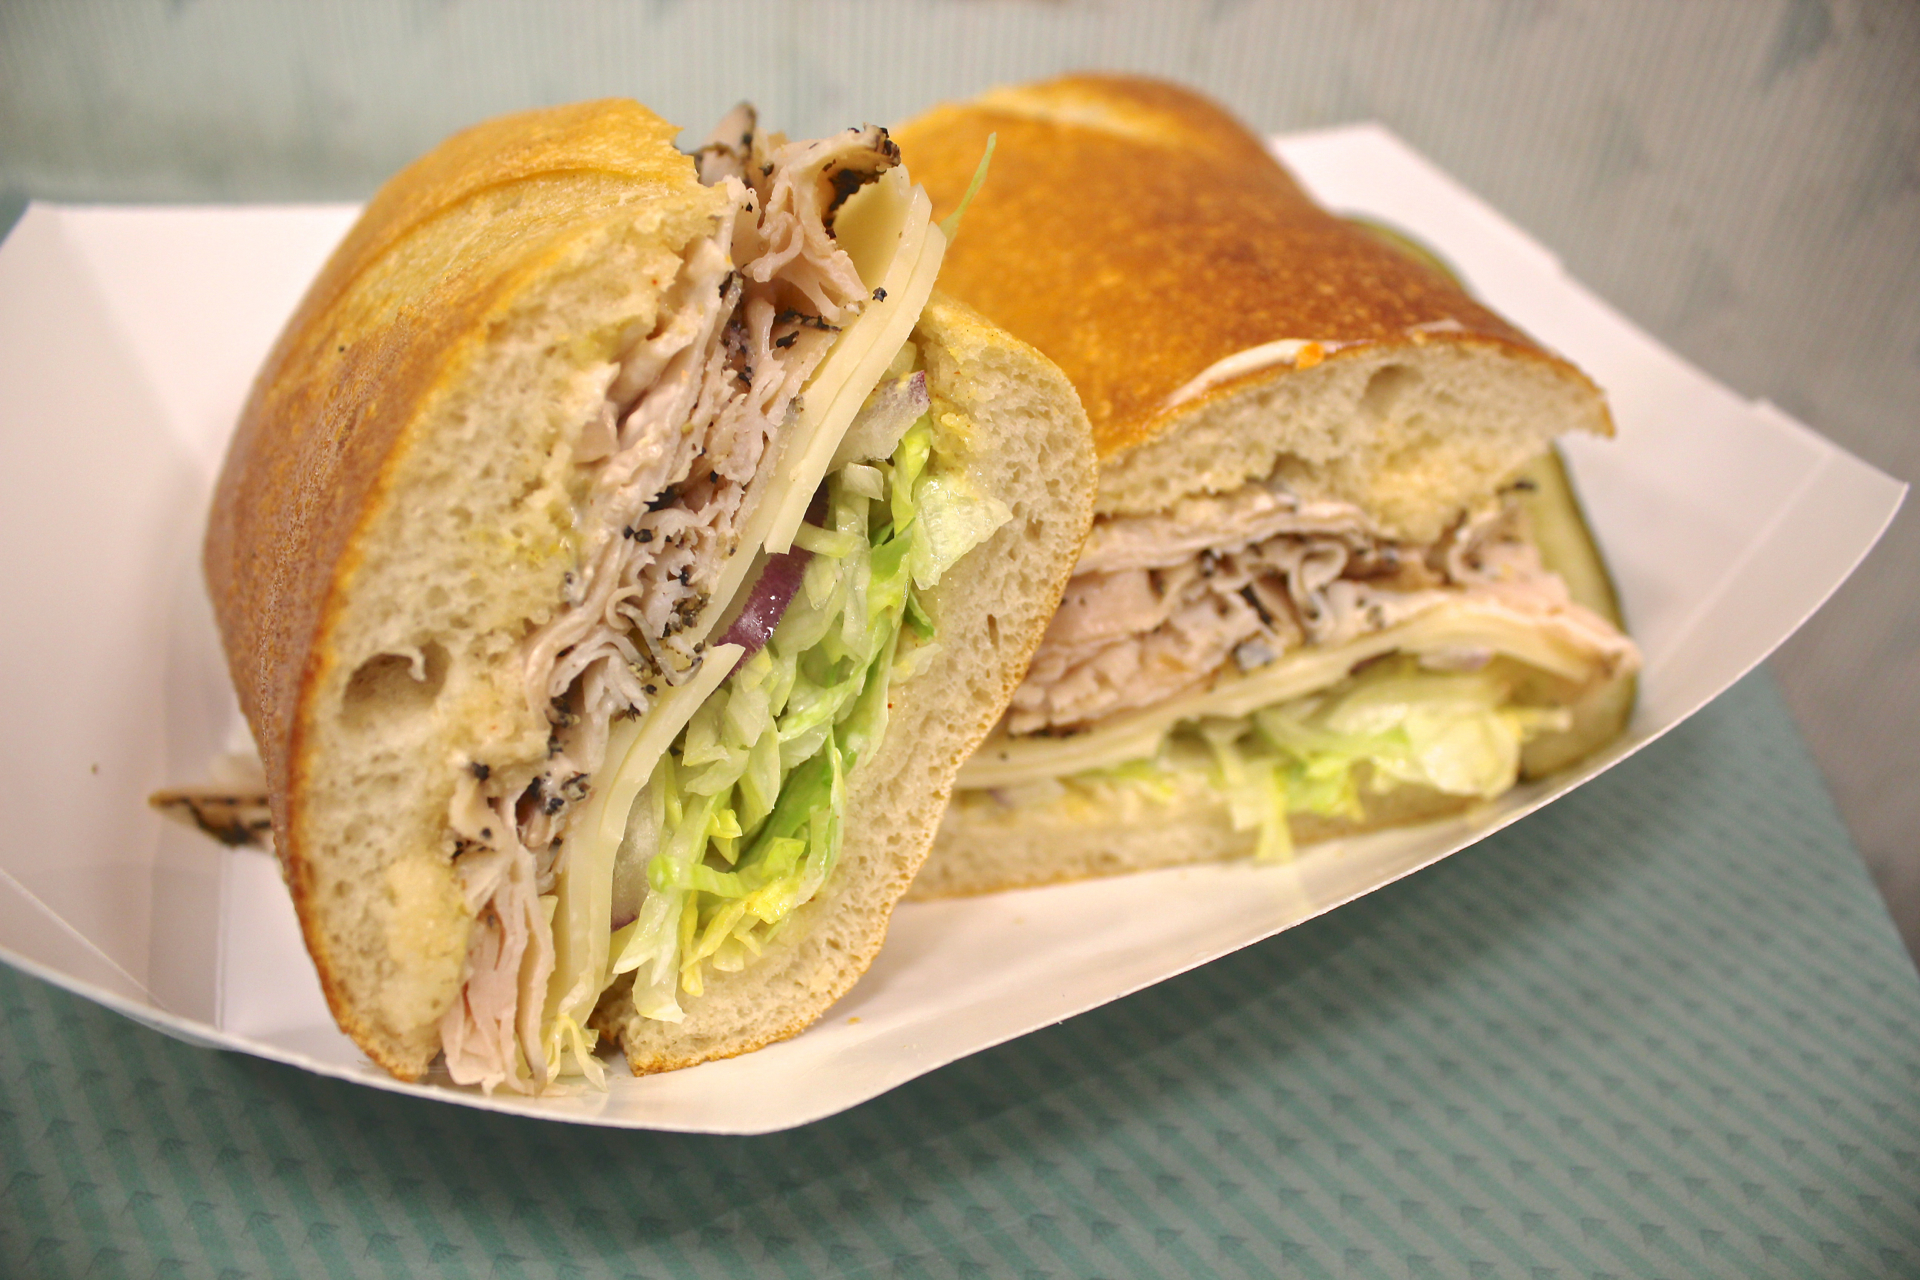 The peppered turkey sandwich at Freshly Baked Eatery.